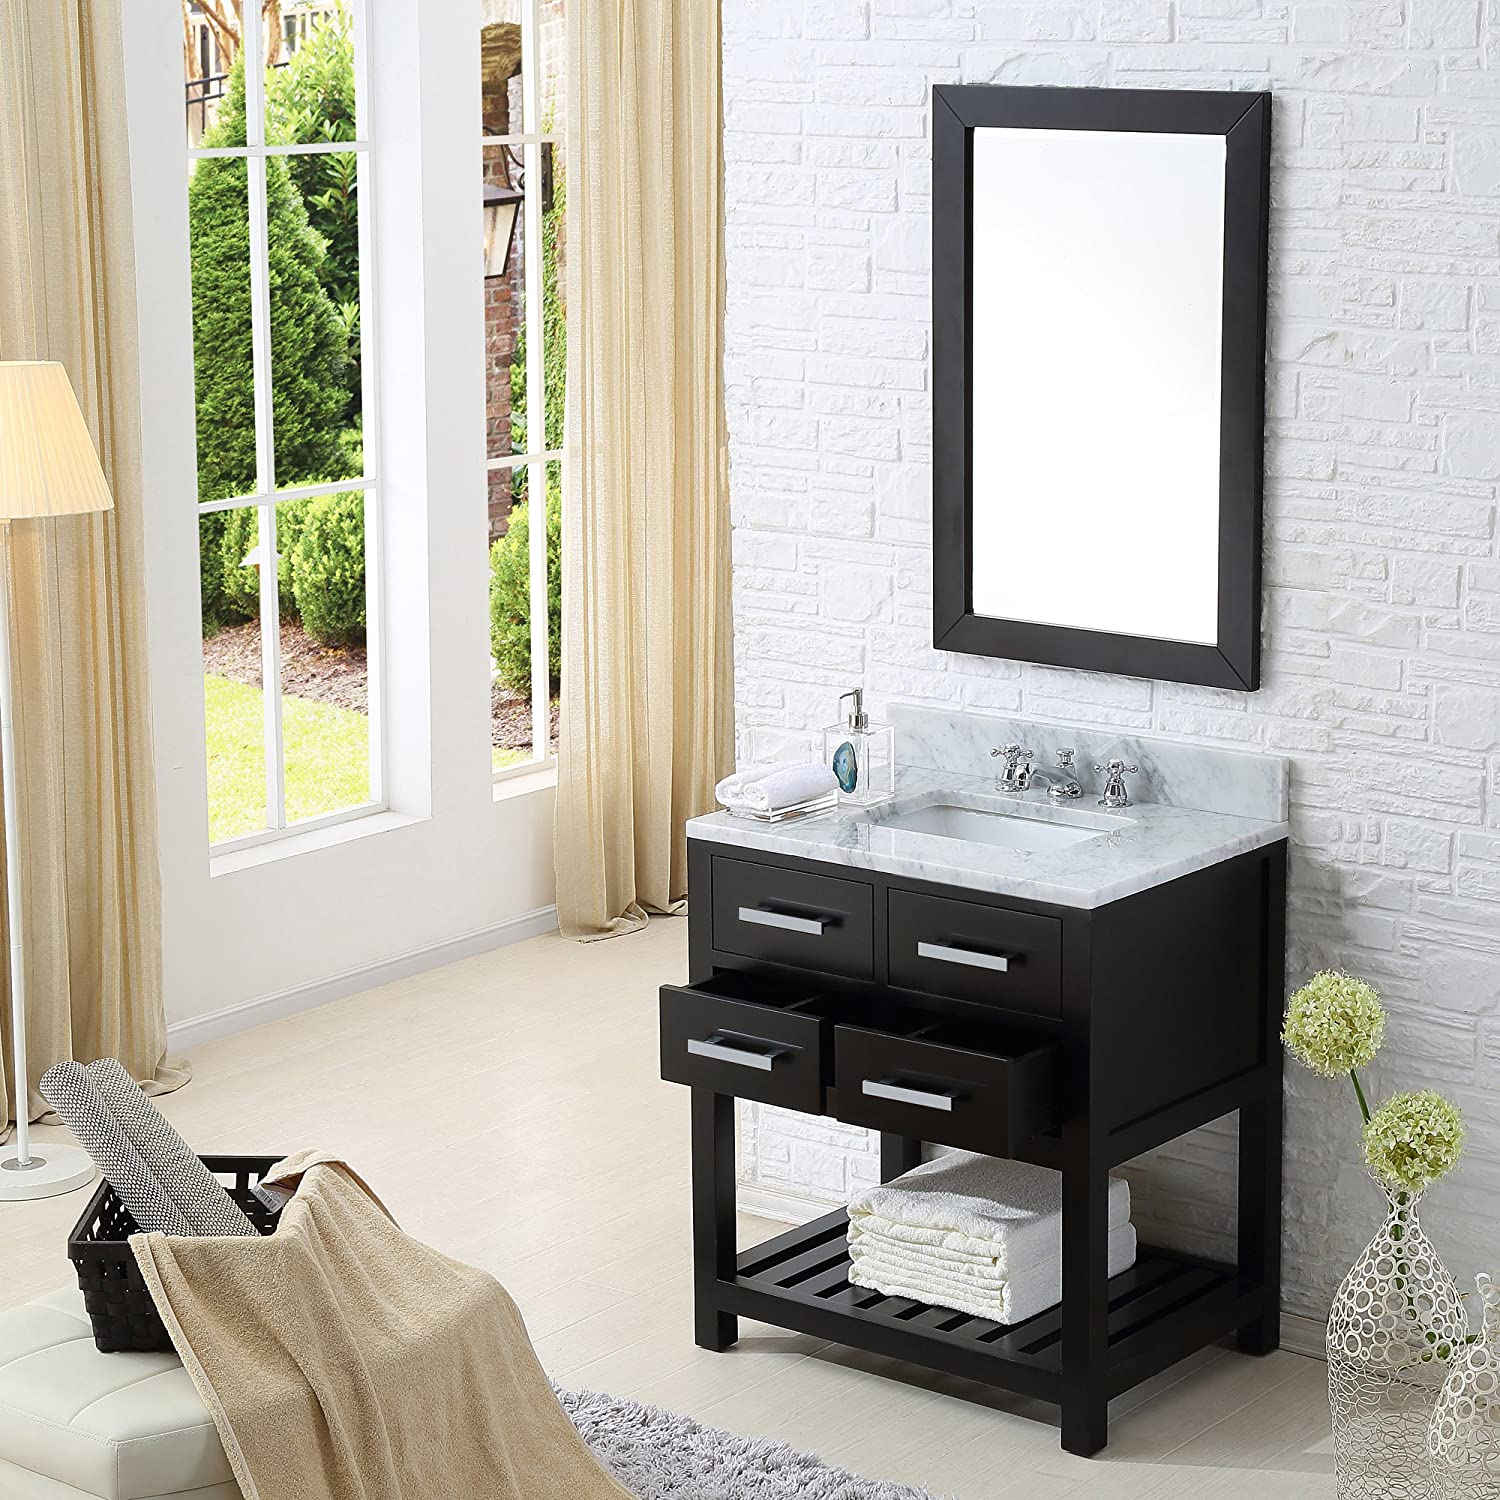 design products single elements paris bathroom espresso sink in vanities corbel vanity universe set